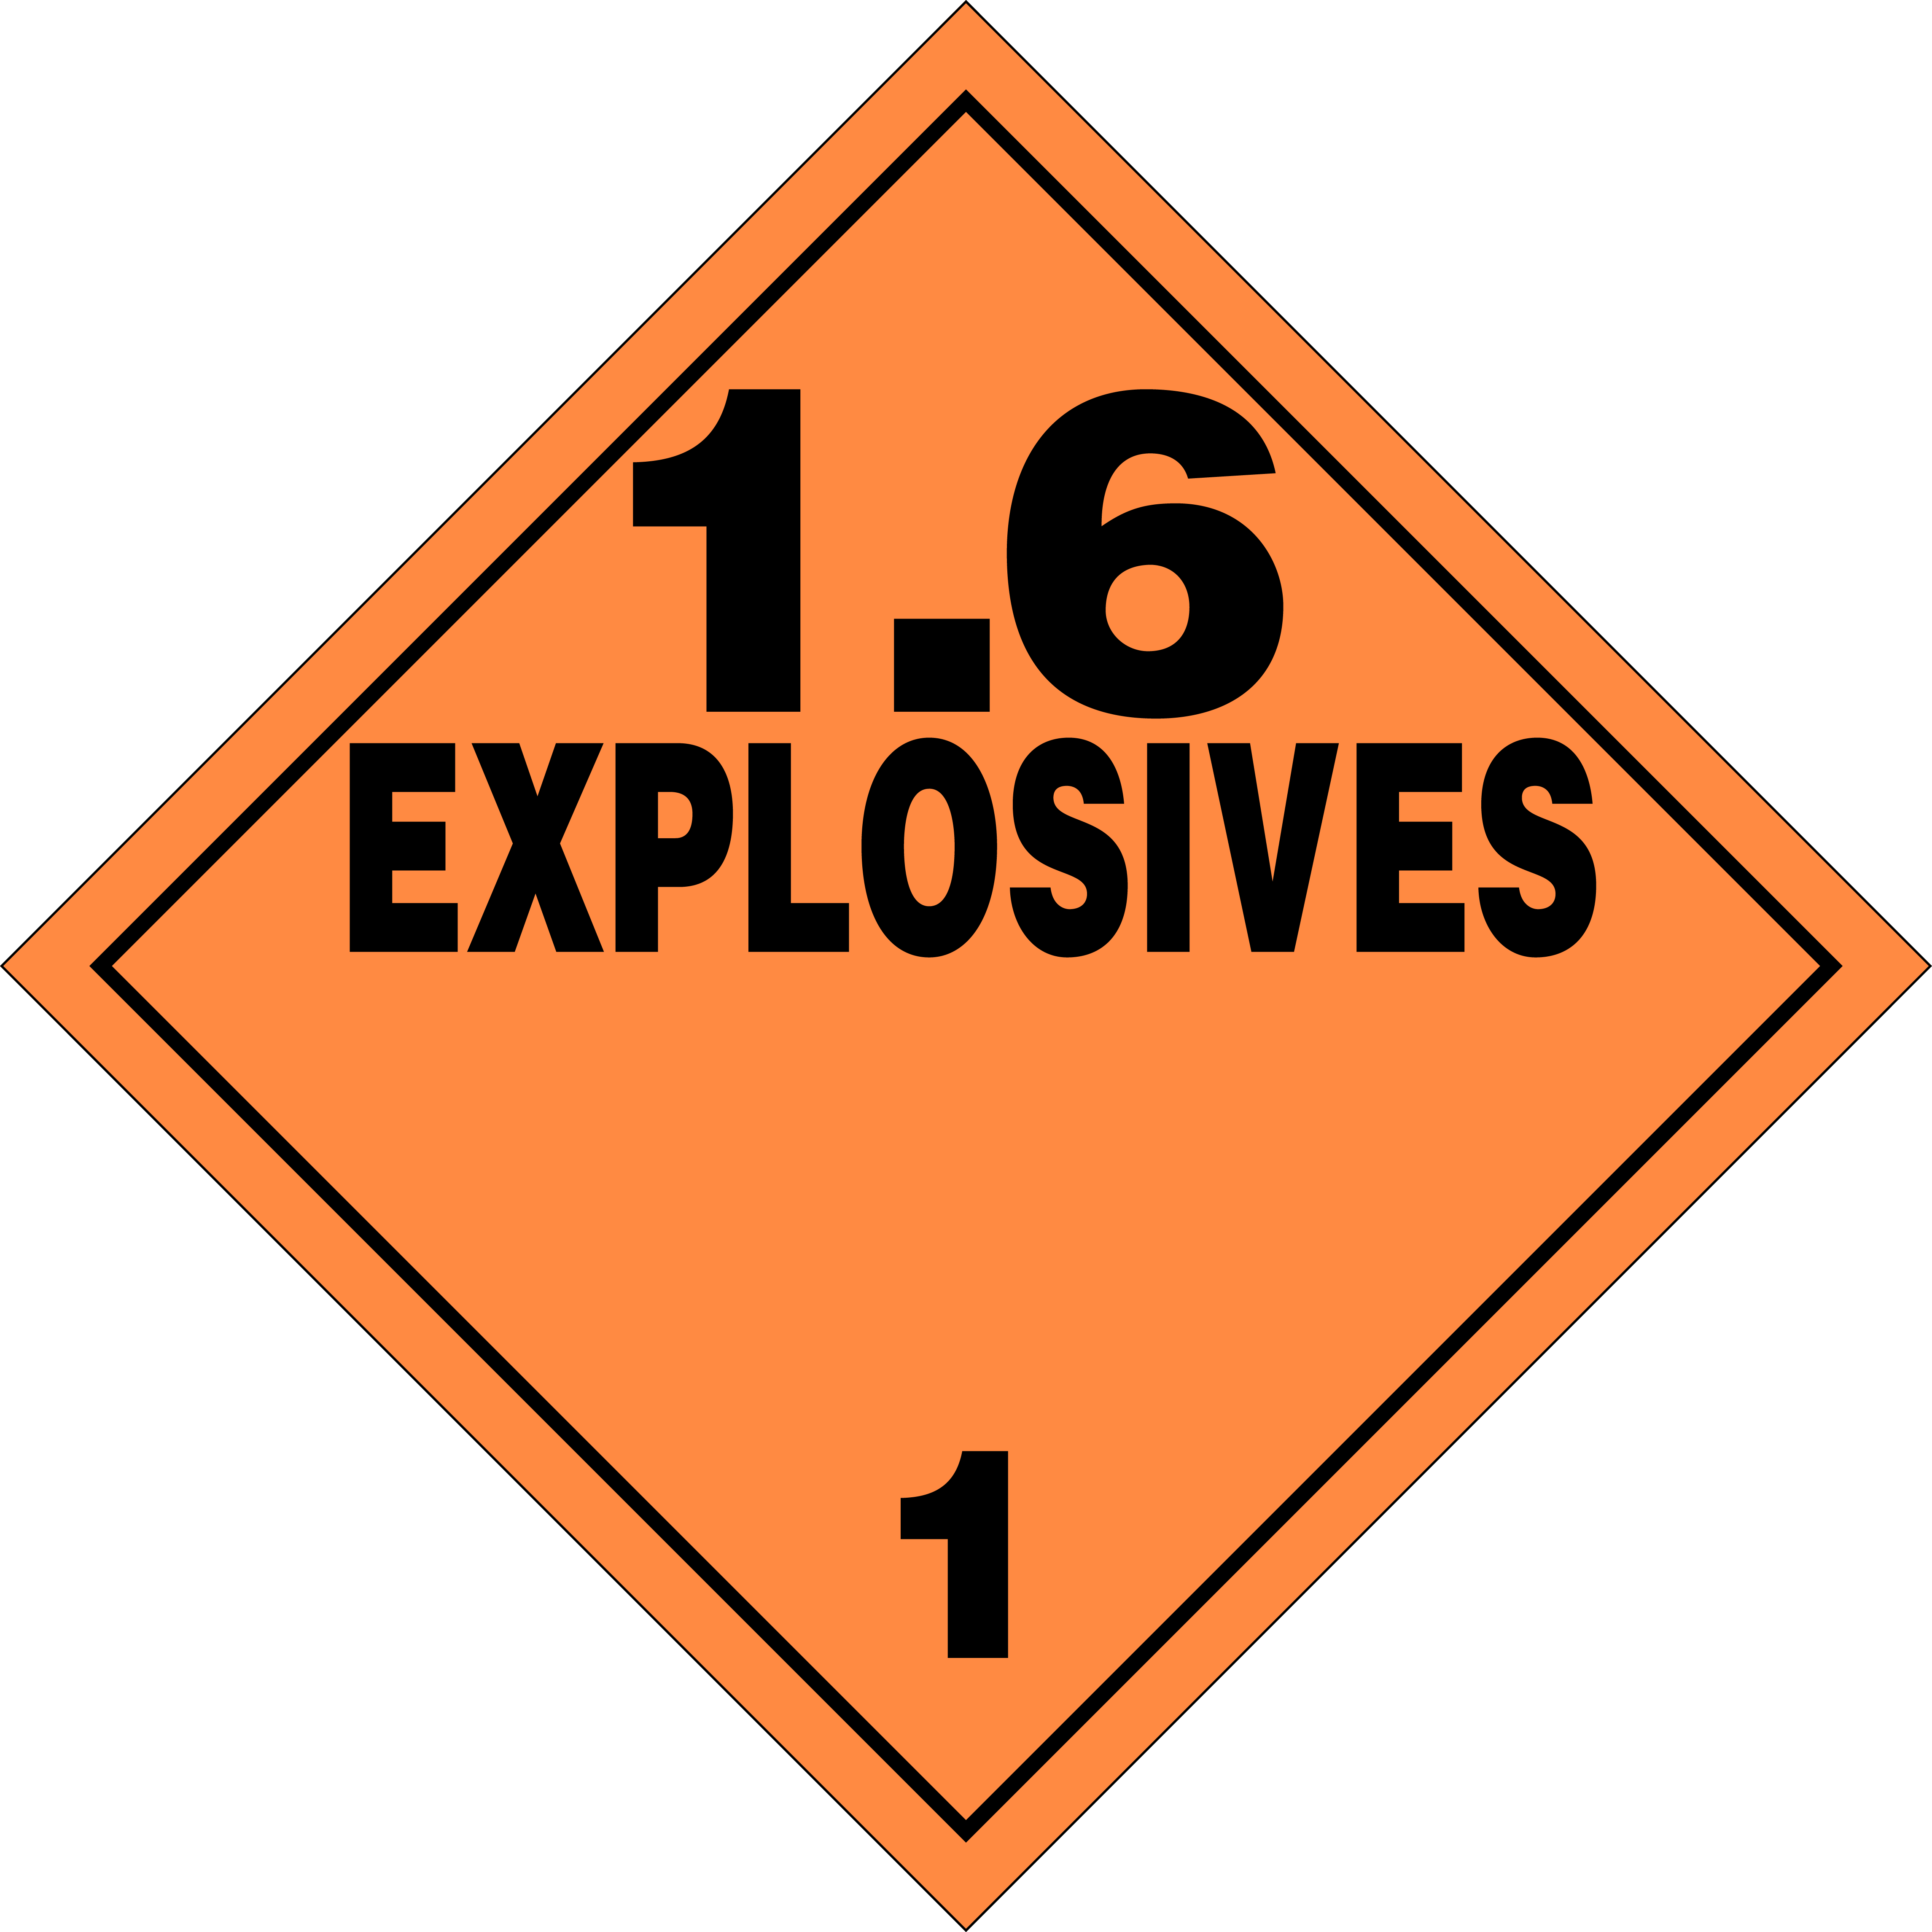 35 explosive symbol free cliparts that you can download to you ...